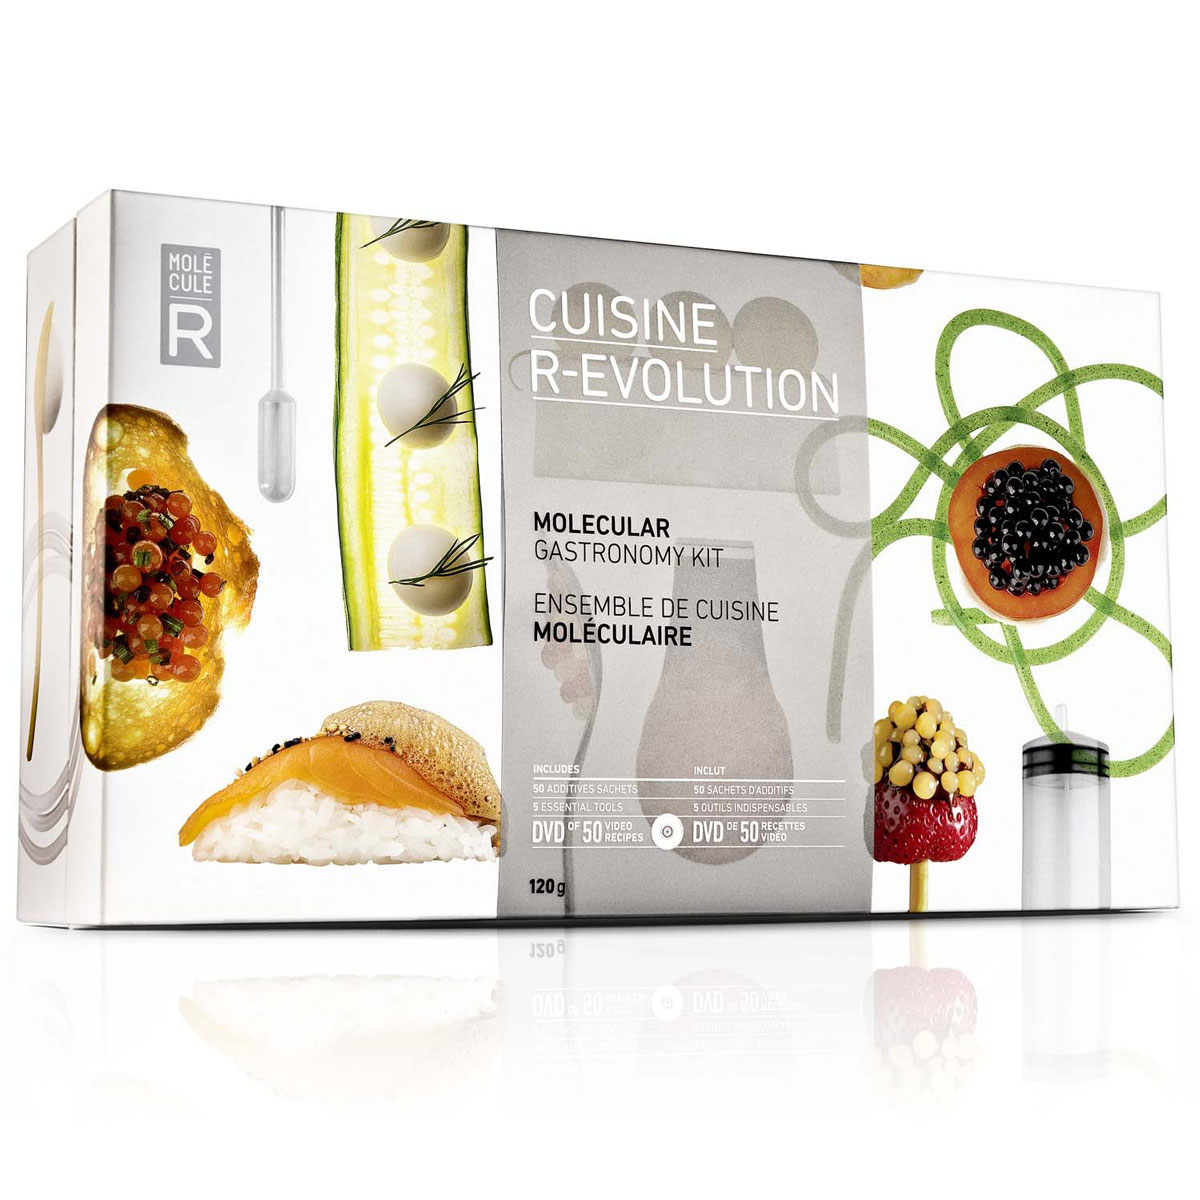 Cuisine r evolution molecular gastronomy kit the green - Cuisine r evolution recipes ...